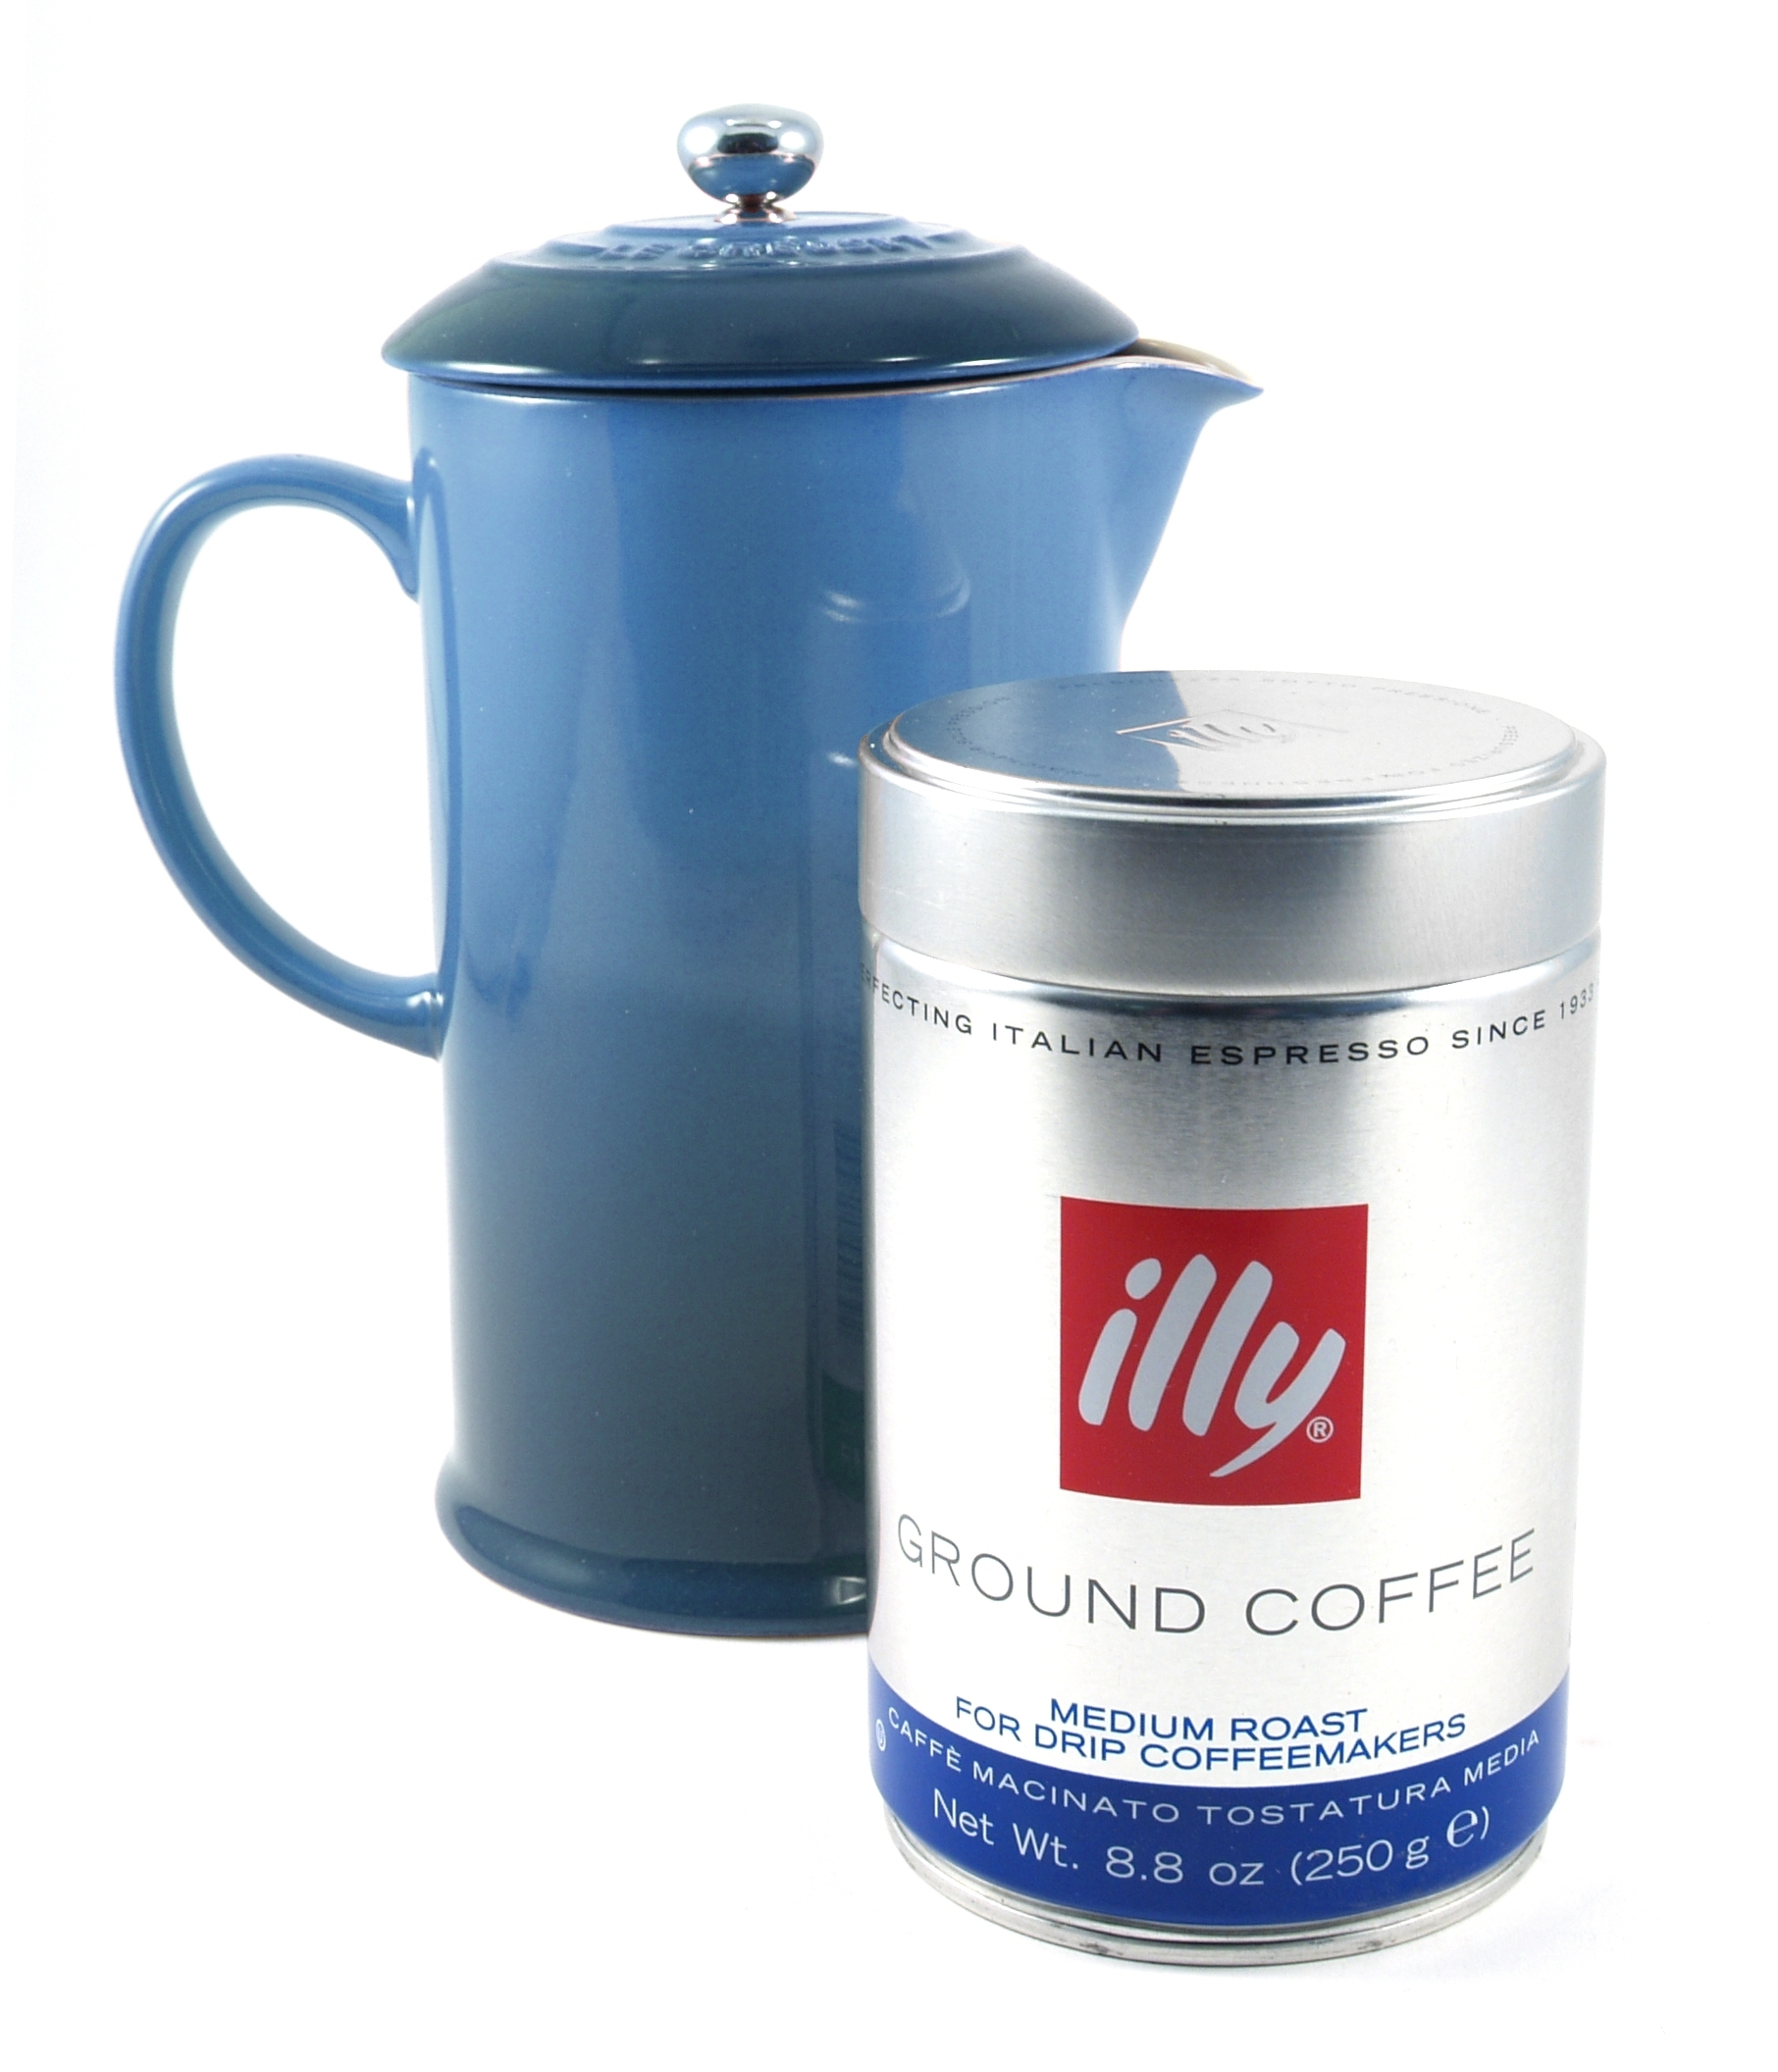 Le Creuset Marseille Blue Stoneware French Press 1 Quart Coffee Maker with Illy Medium Roast Ground Coffee